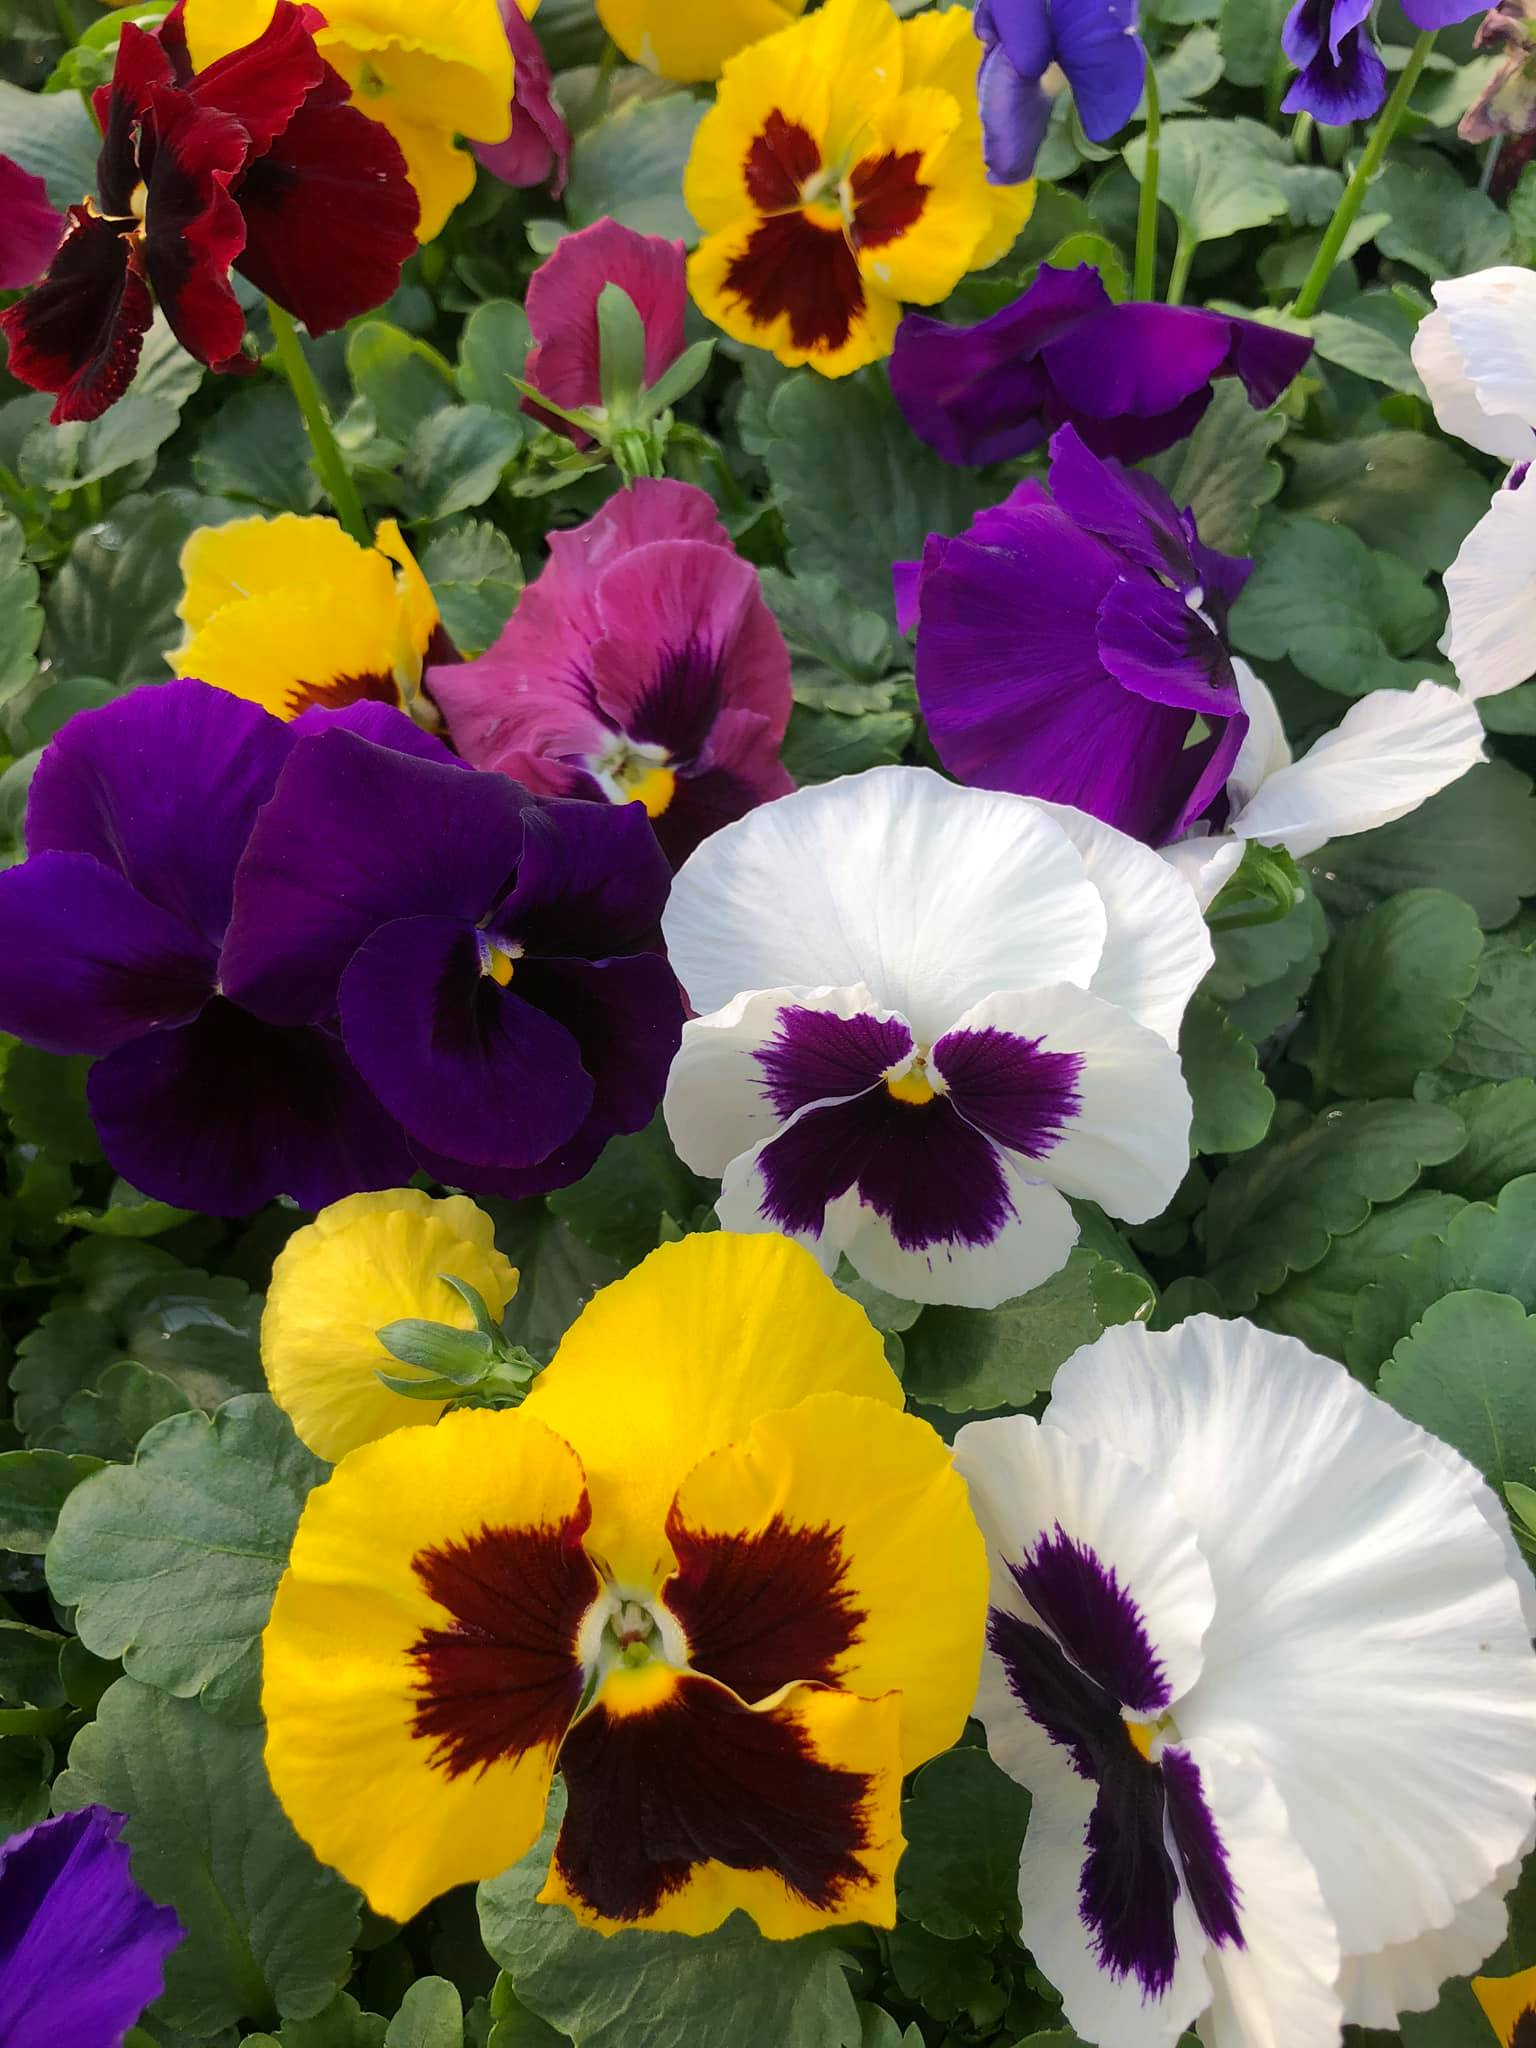 We have the Pansies!